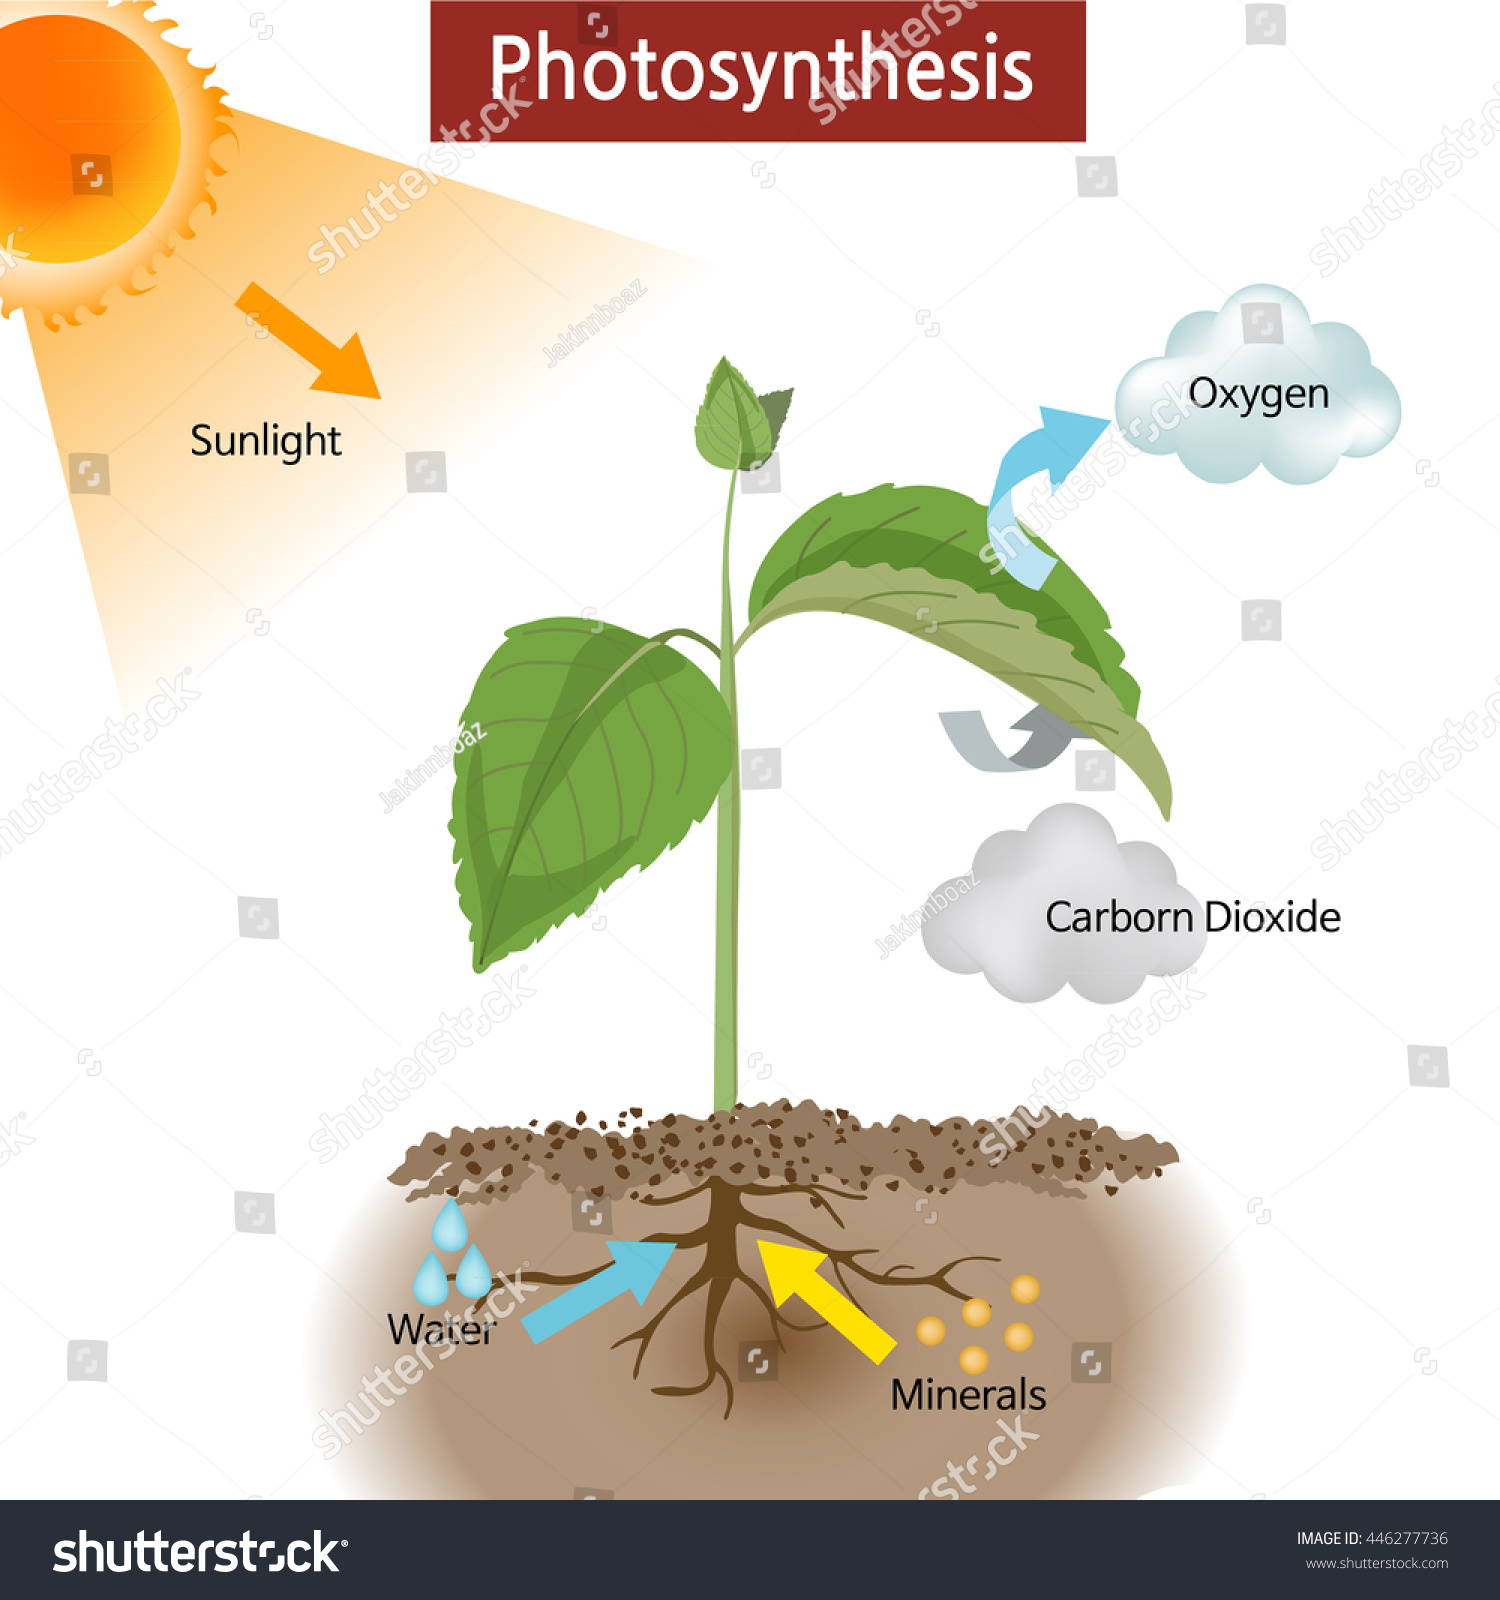 NOVA - Official Website Illuminating Photosynthesis The site of photosynthesis in a plant is